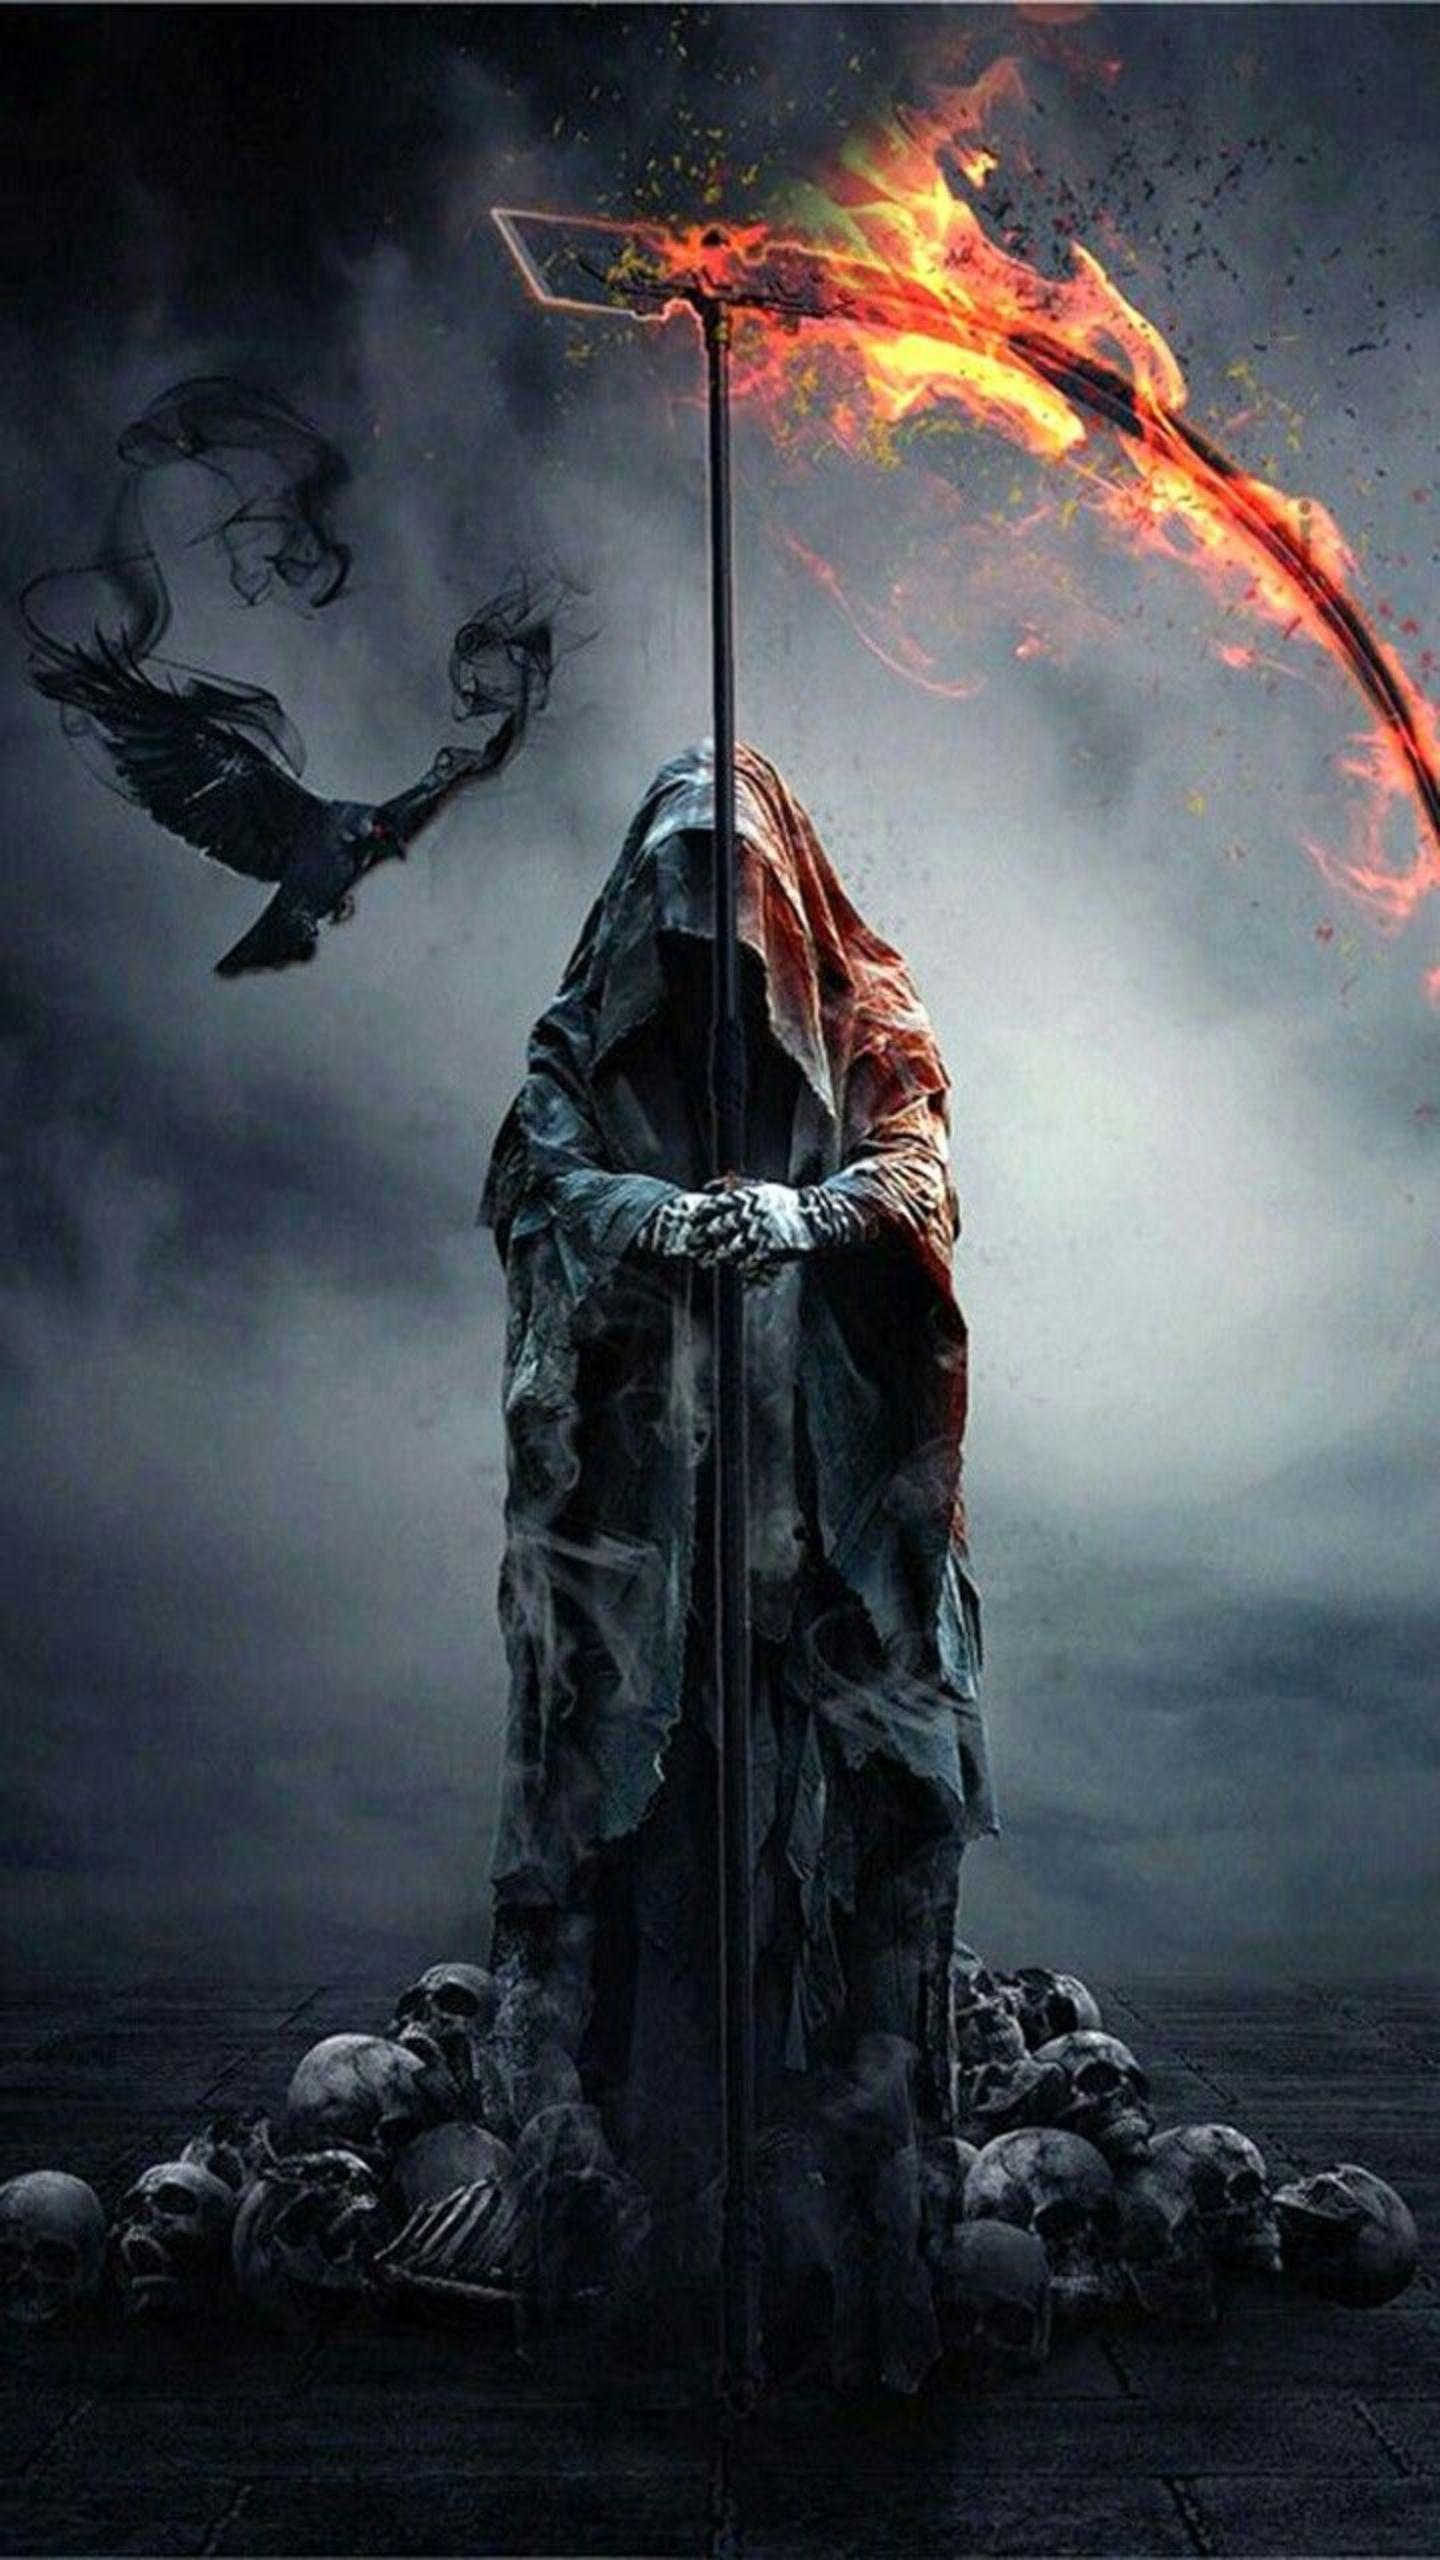 Grim Reaper Wallpaper Hd New For Android Apk Download